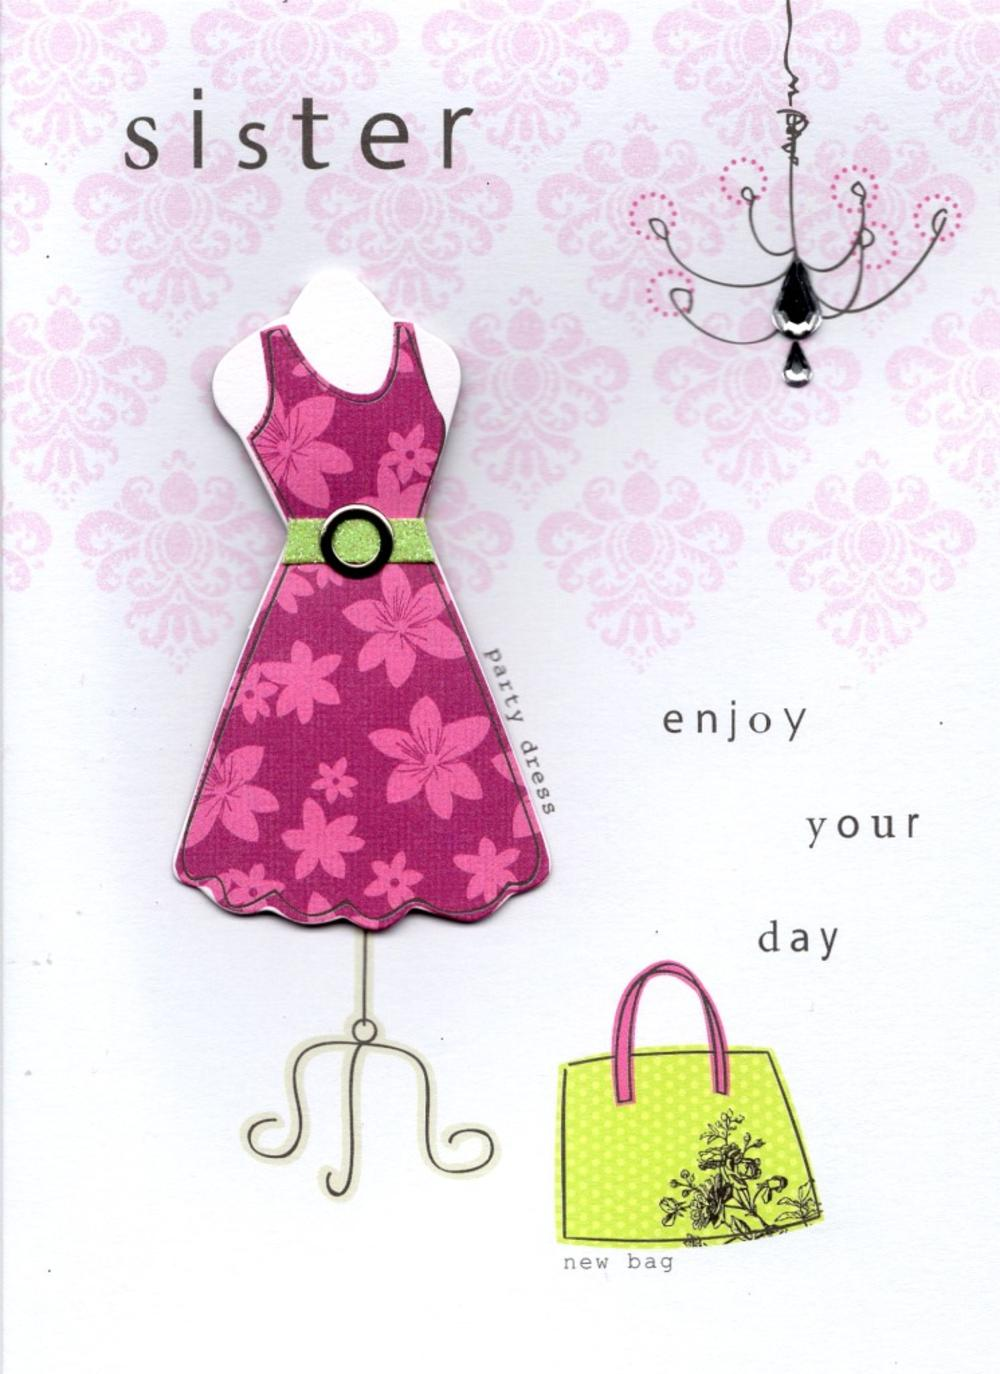 Sister pretty dress handmade happy birthday card cards love kates sister pretty dress handmade happy birthday card bookmarktalkfo Gallery